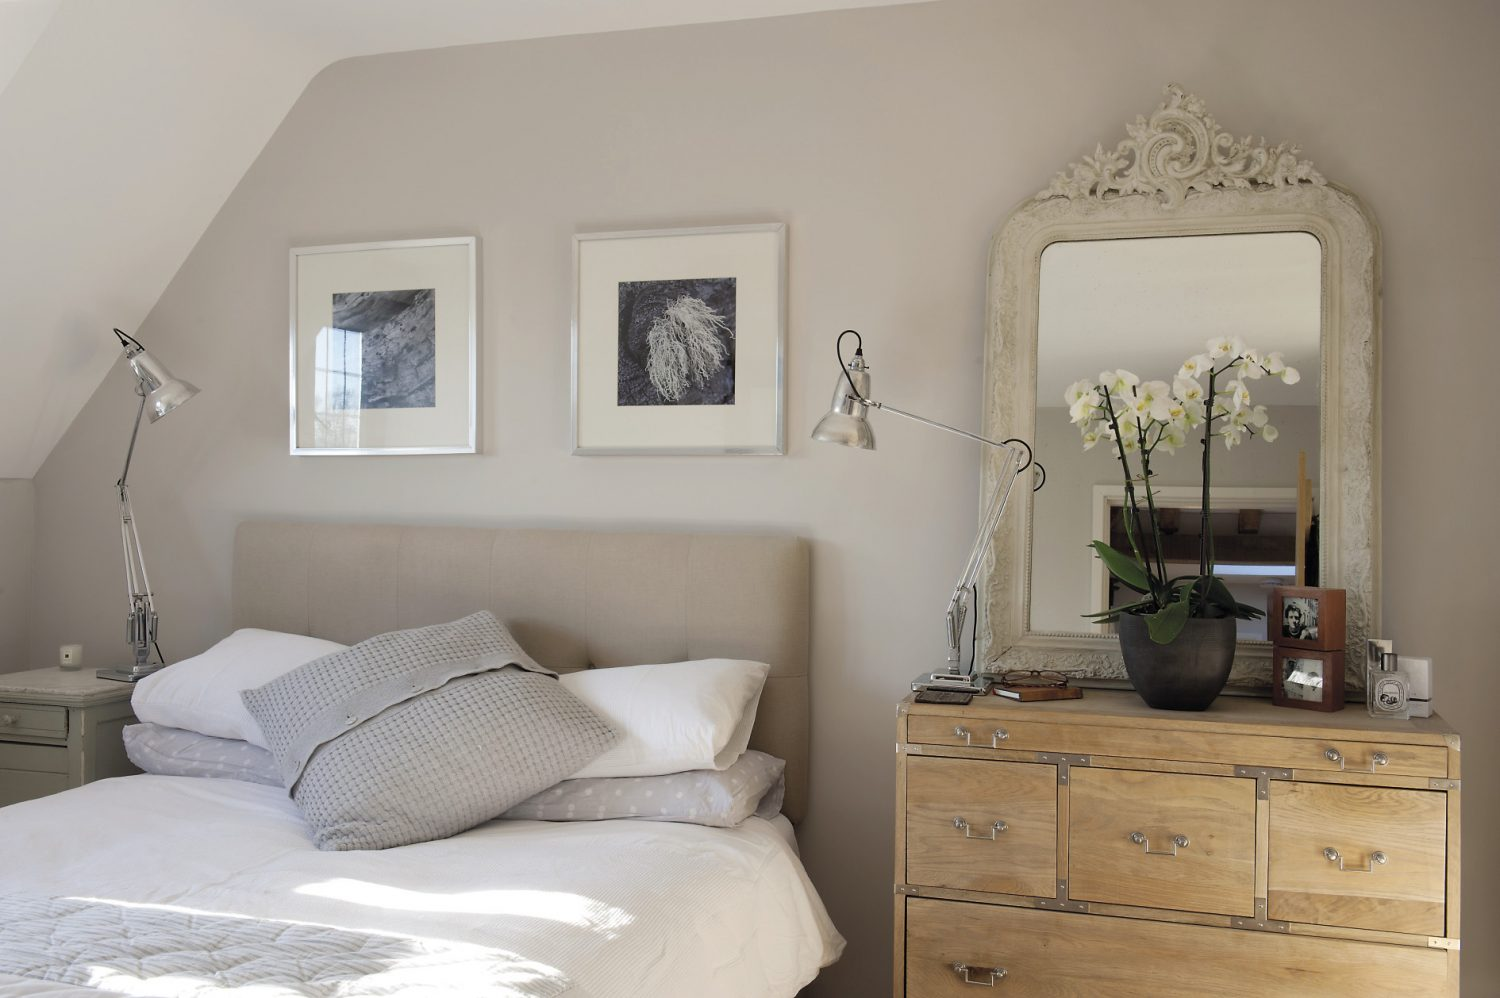 The master bedroom with its en suite bathroom is a cornucopia of Heirloomia. Flanking the bed are two re-chromed and rewired 1940s Anglepoise lamps atop a limed oak campaign-style chest of drawers and a marble-topped bedside table